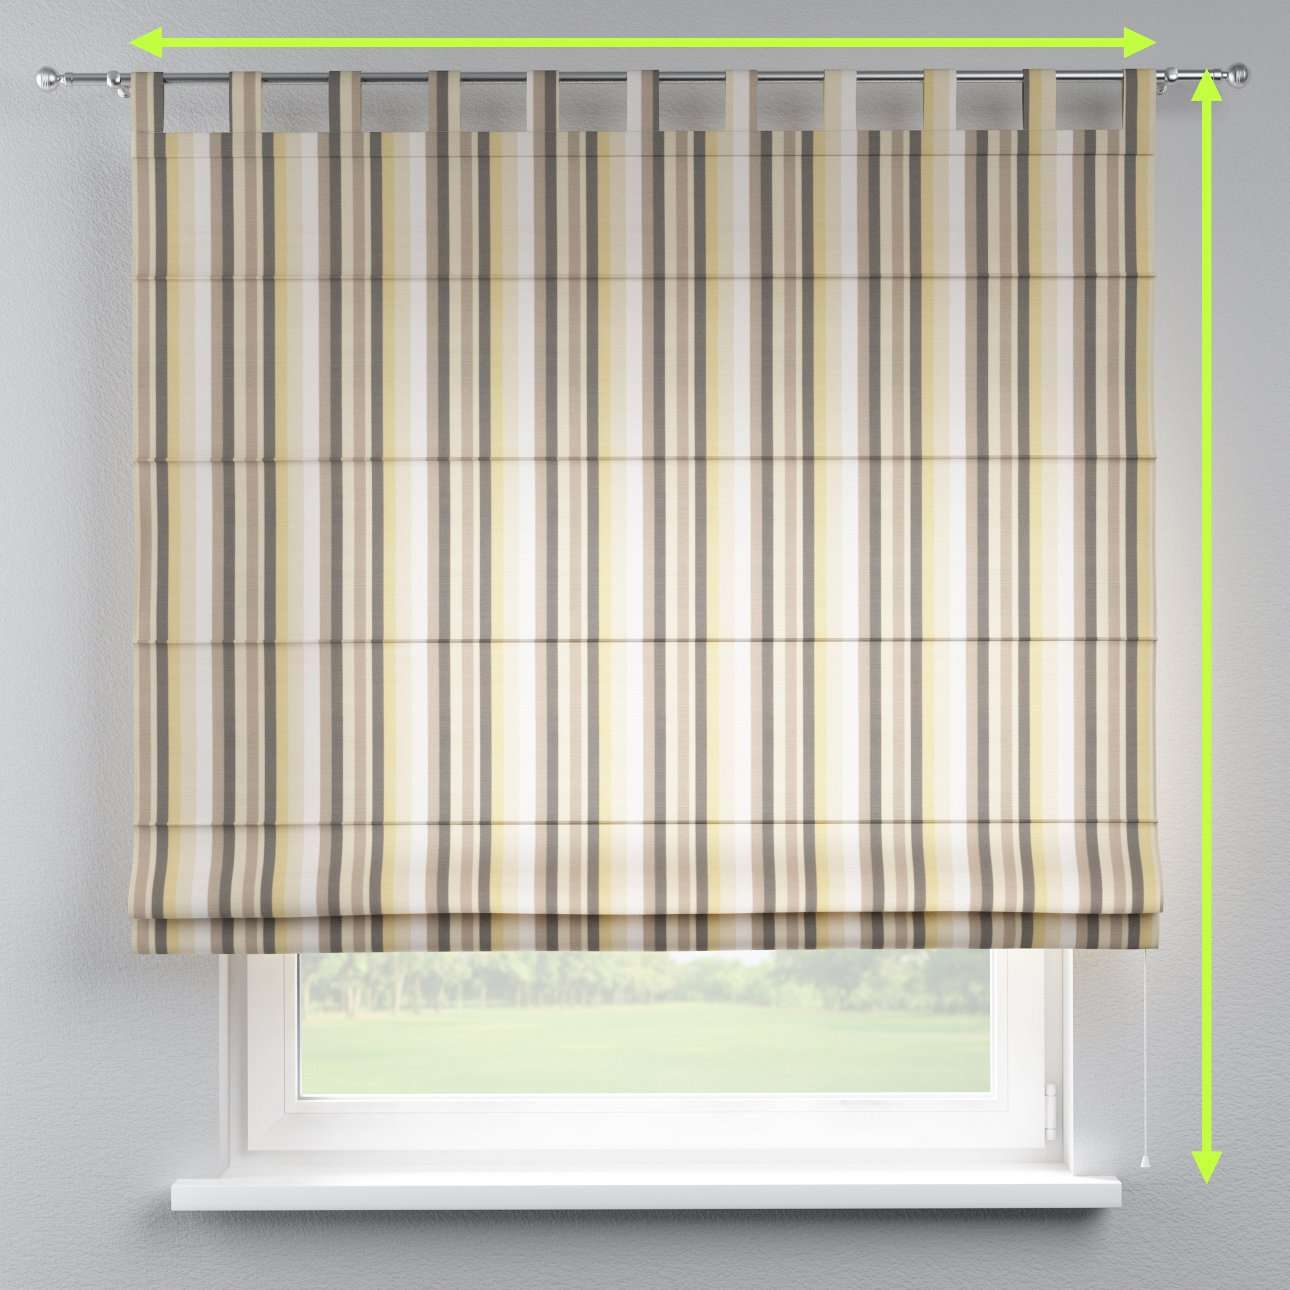 Verona tab top roman blind in collection Norge, fabric: 140-80